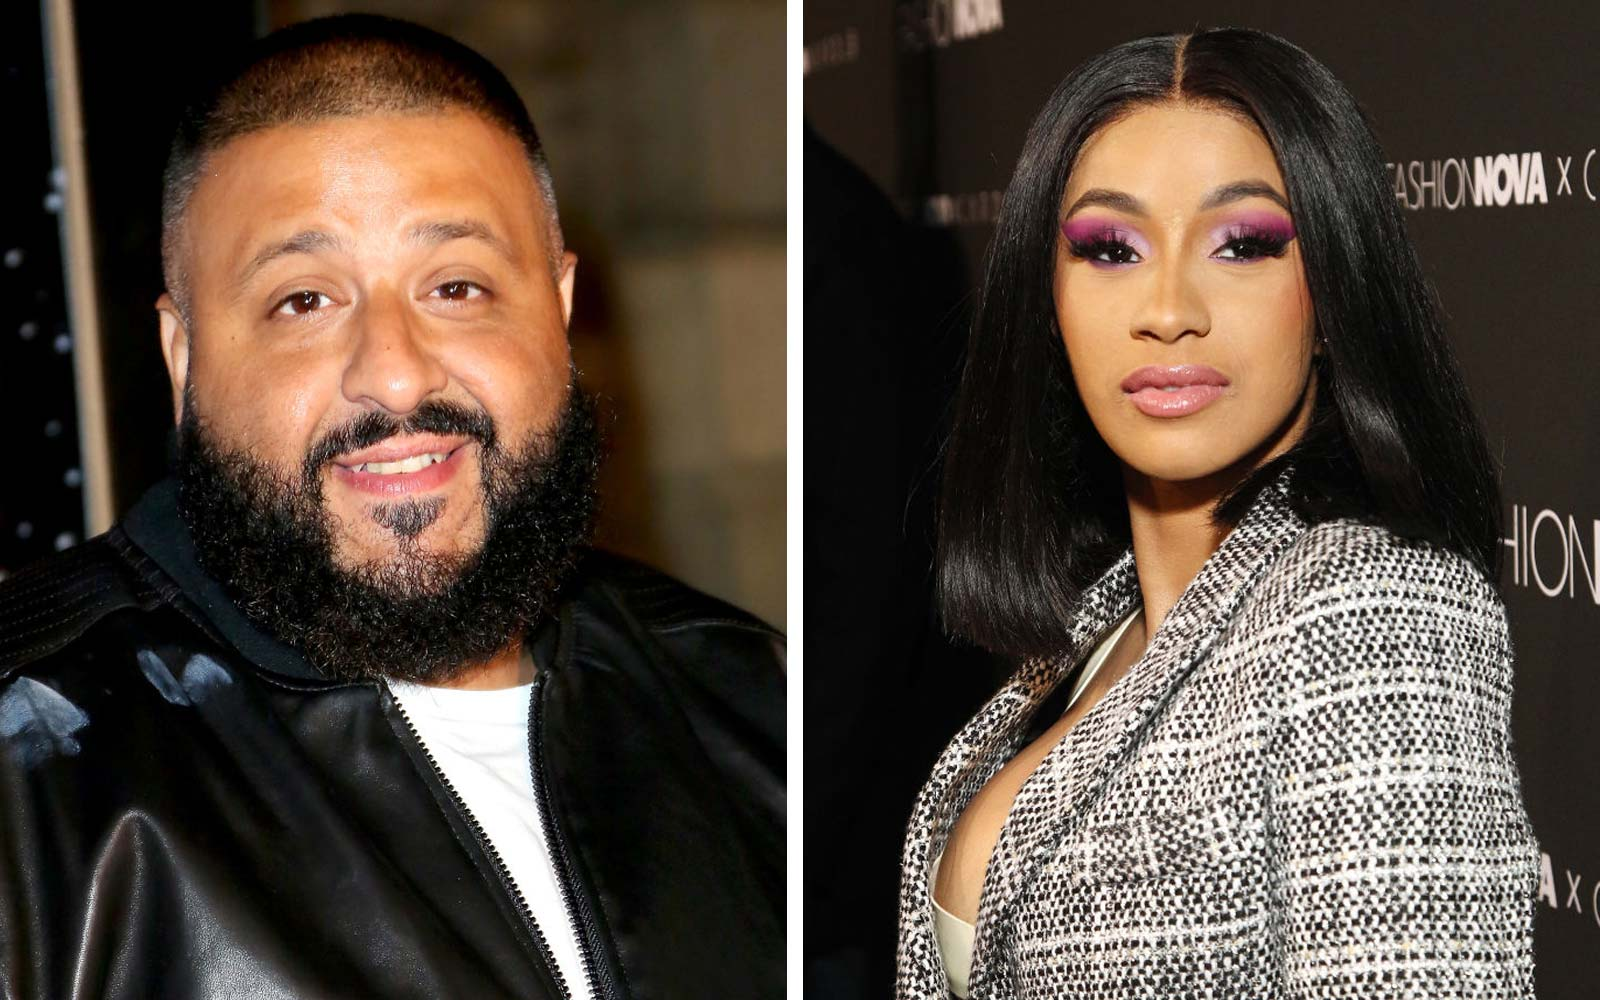 You Can Cruise Around the Bahamas With DJ Khaled and Cardi B This Summer